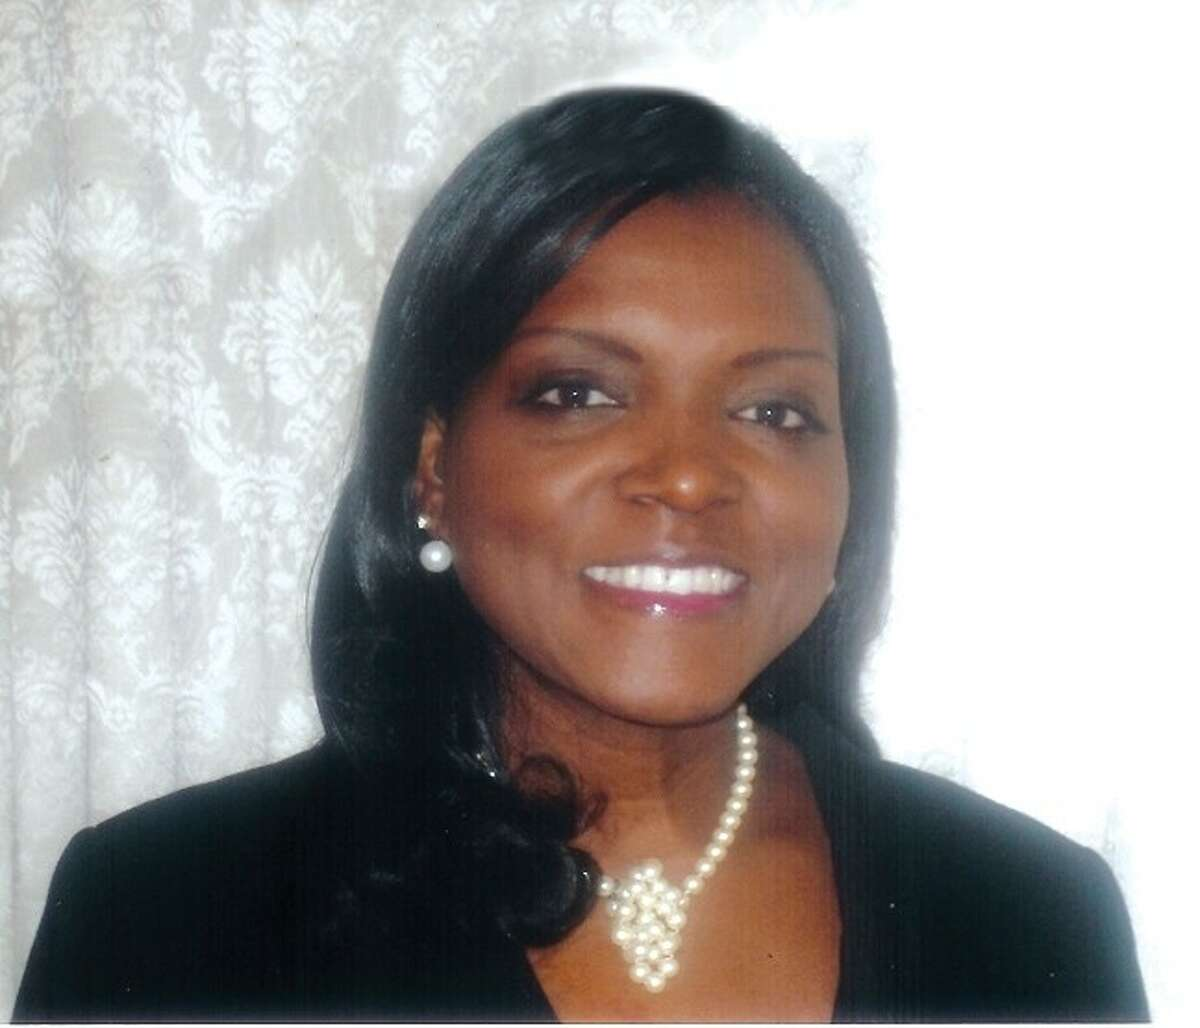 Cynthia L. Gary will serve on the Fort Bend ISD Board of Trustees through May 2012.